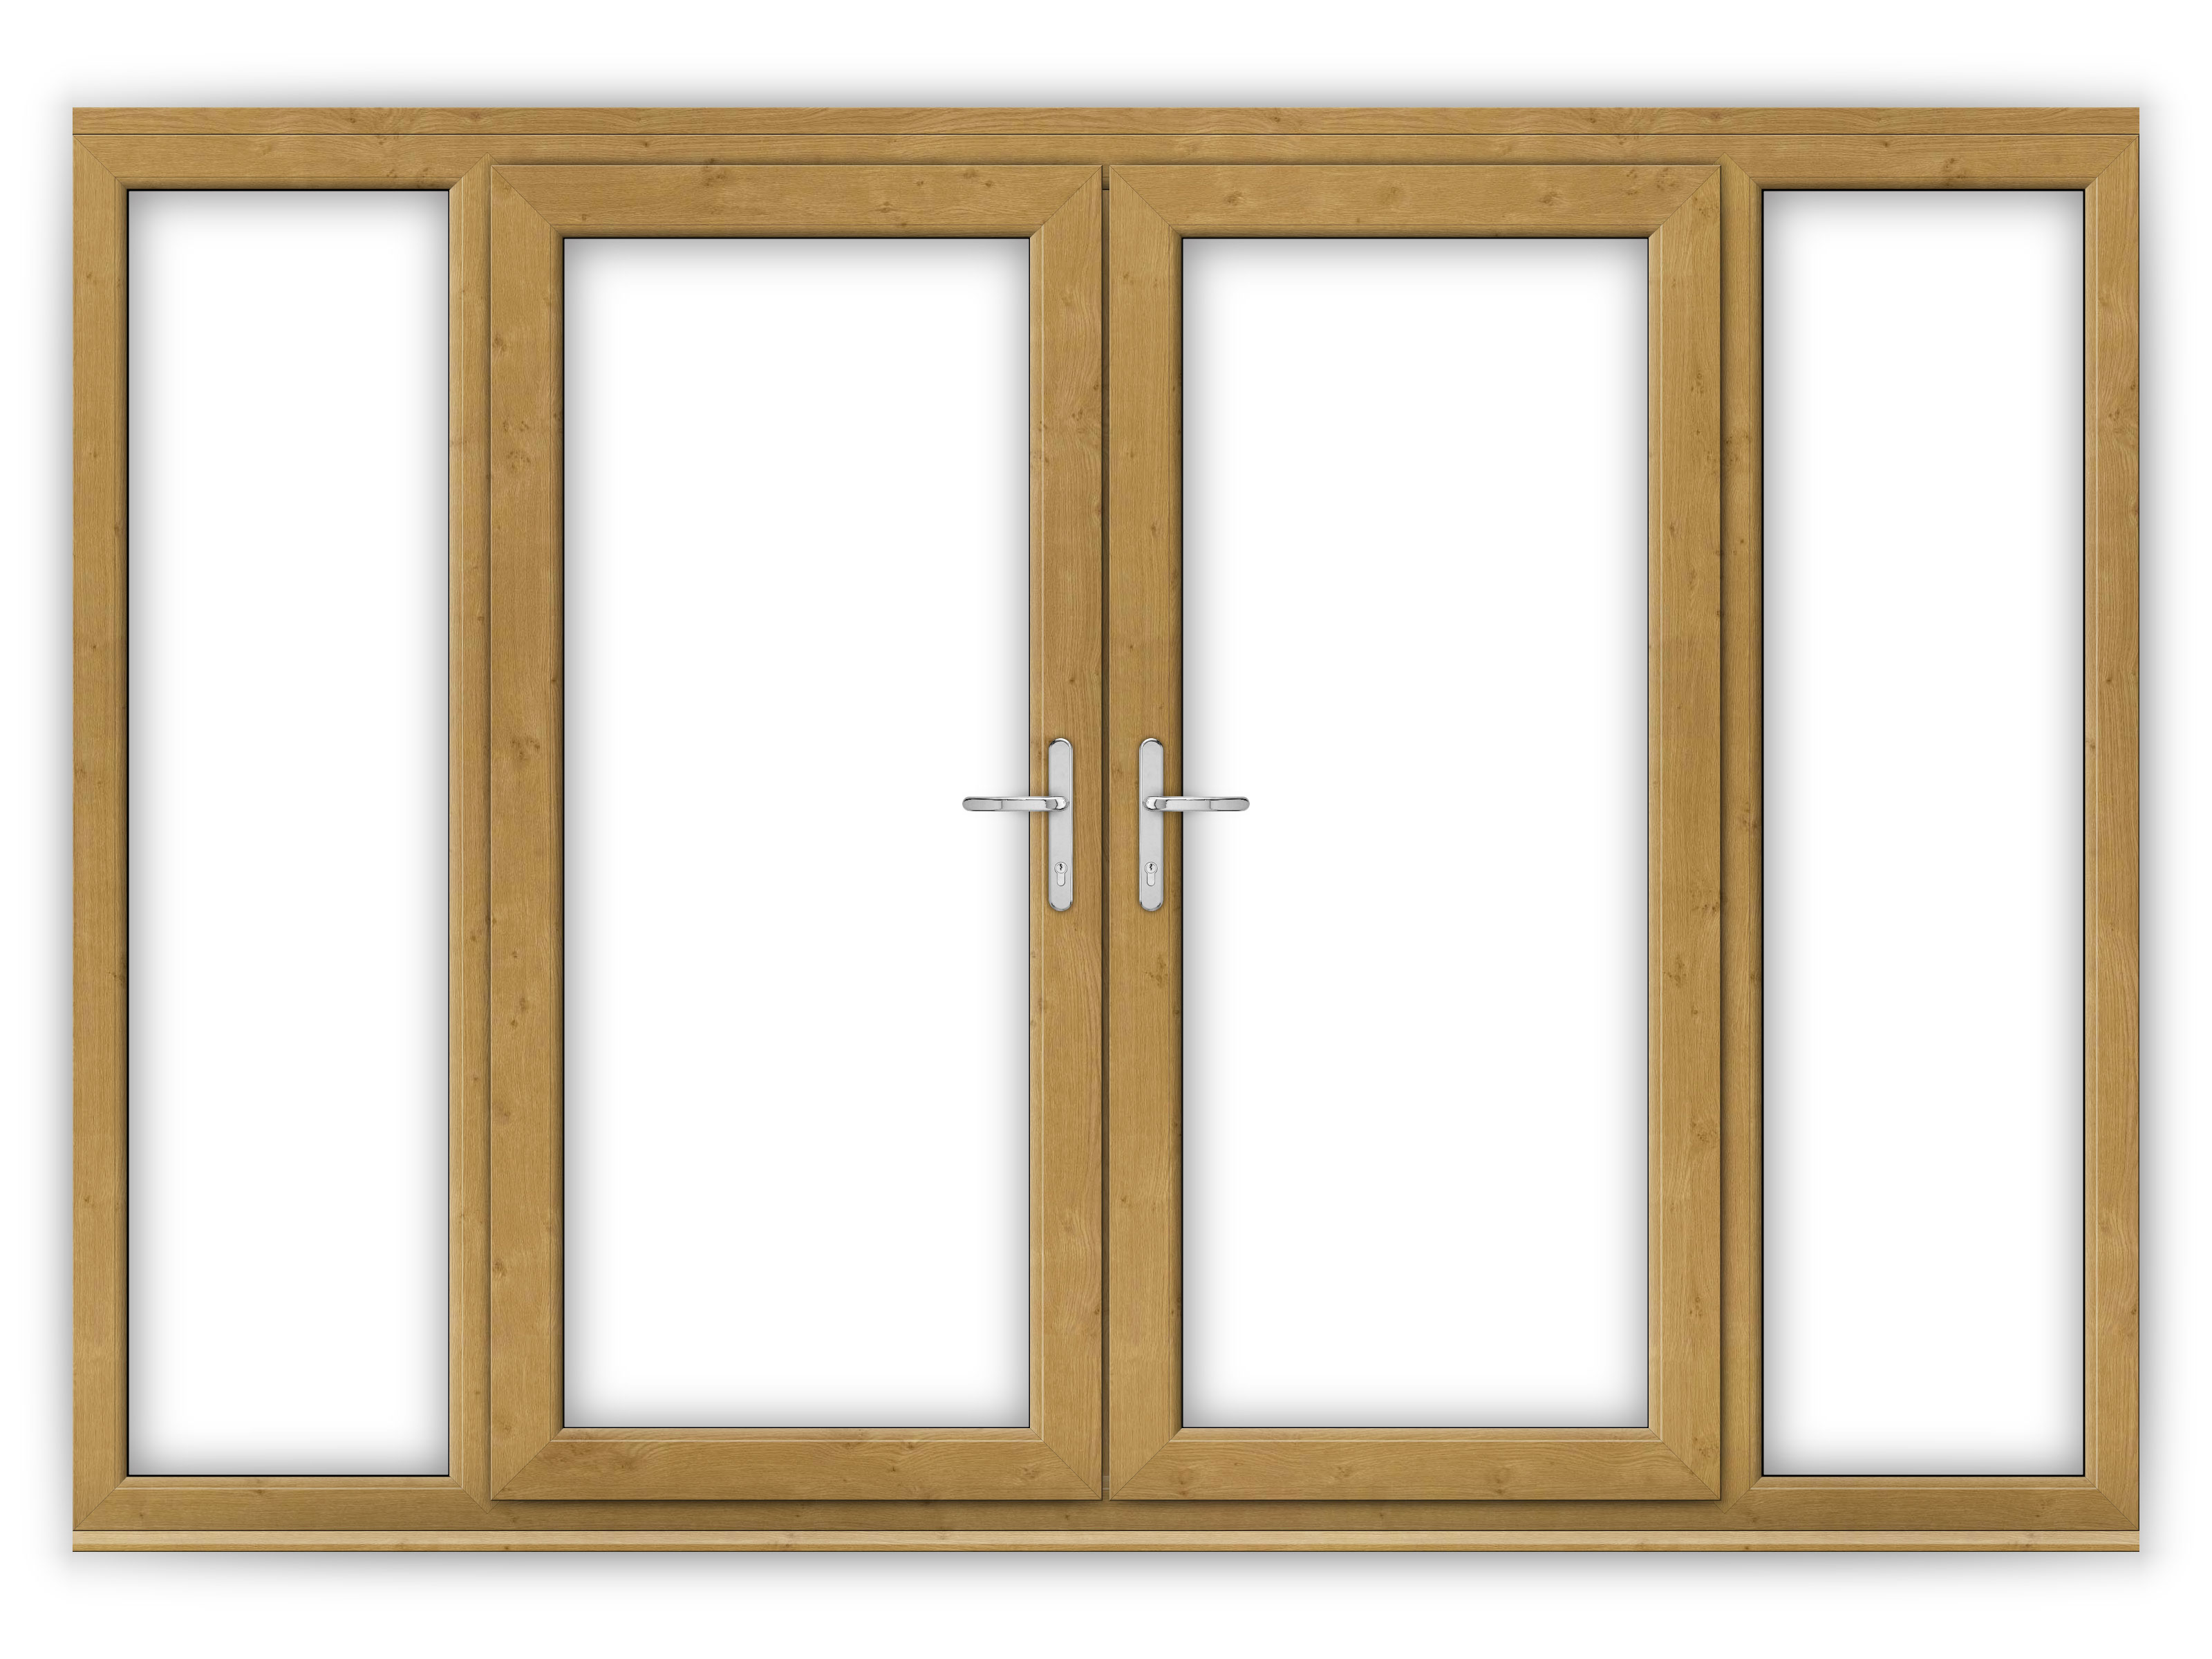 6ft irish oak upvc french doors with wide side panels for 6 ft wide french doors